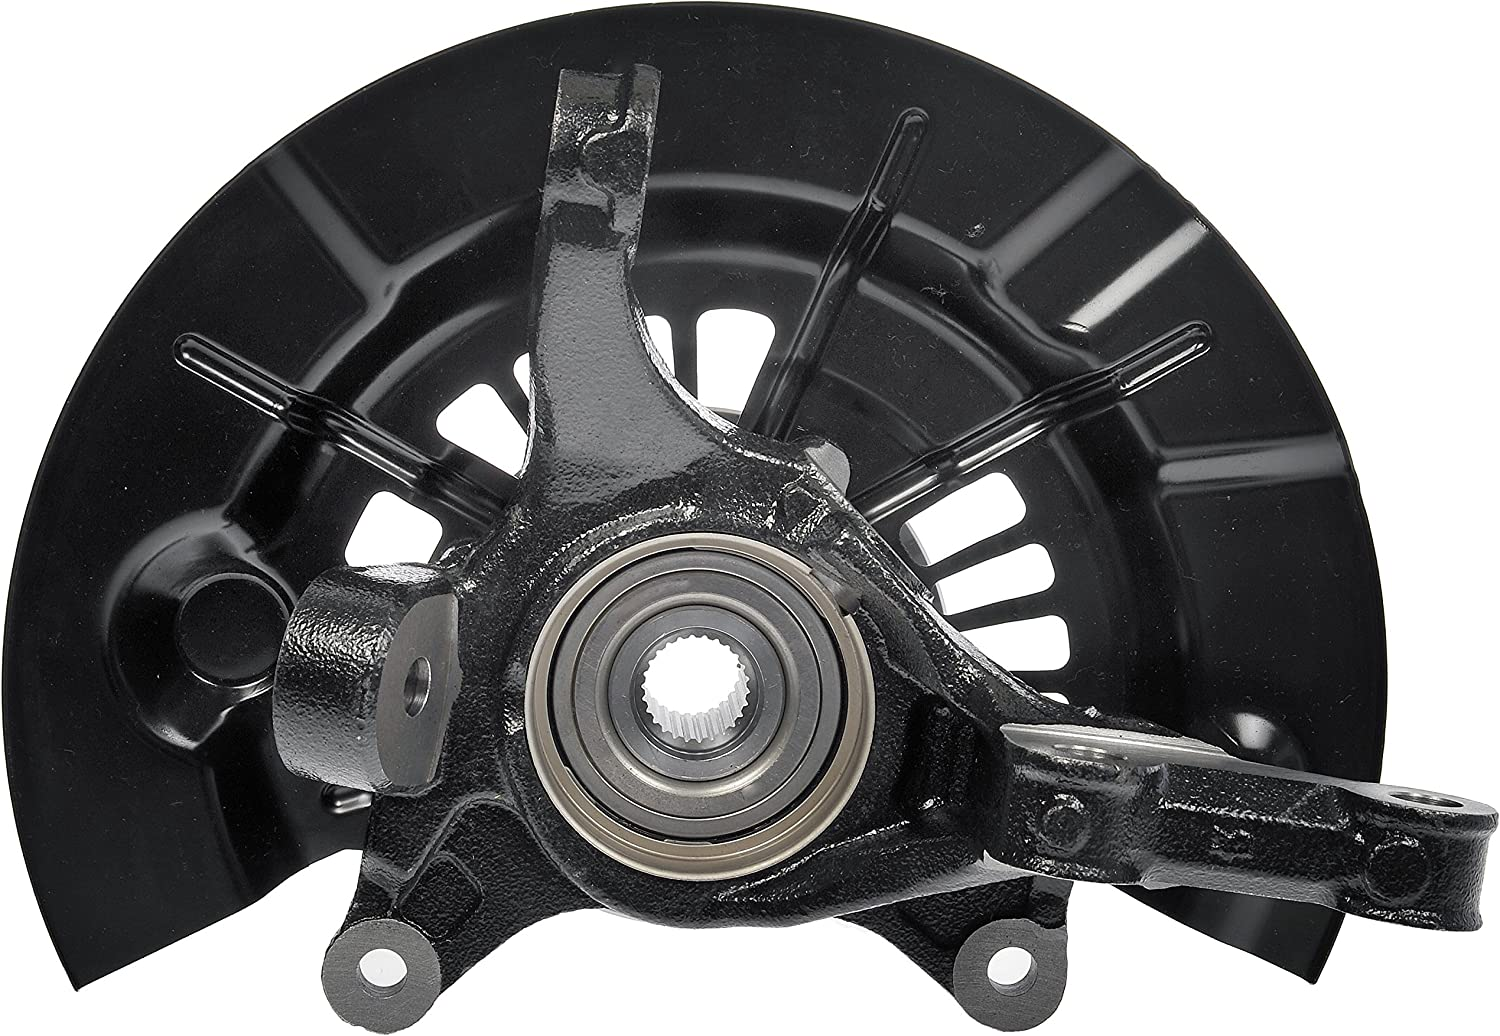 Dorman 698-383 Front Driver Side Loaded Steering Knuckle for Select Toyota Camry Models